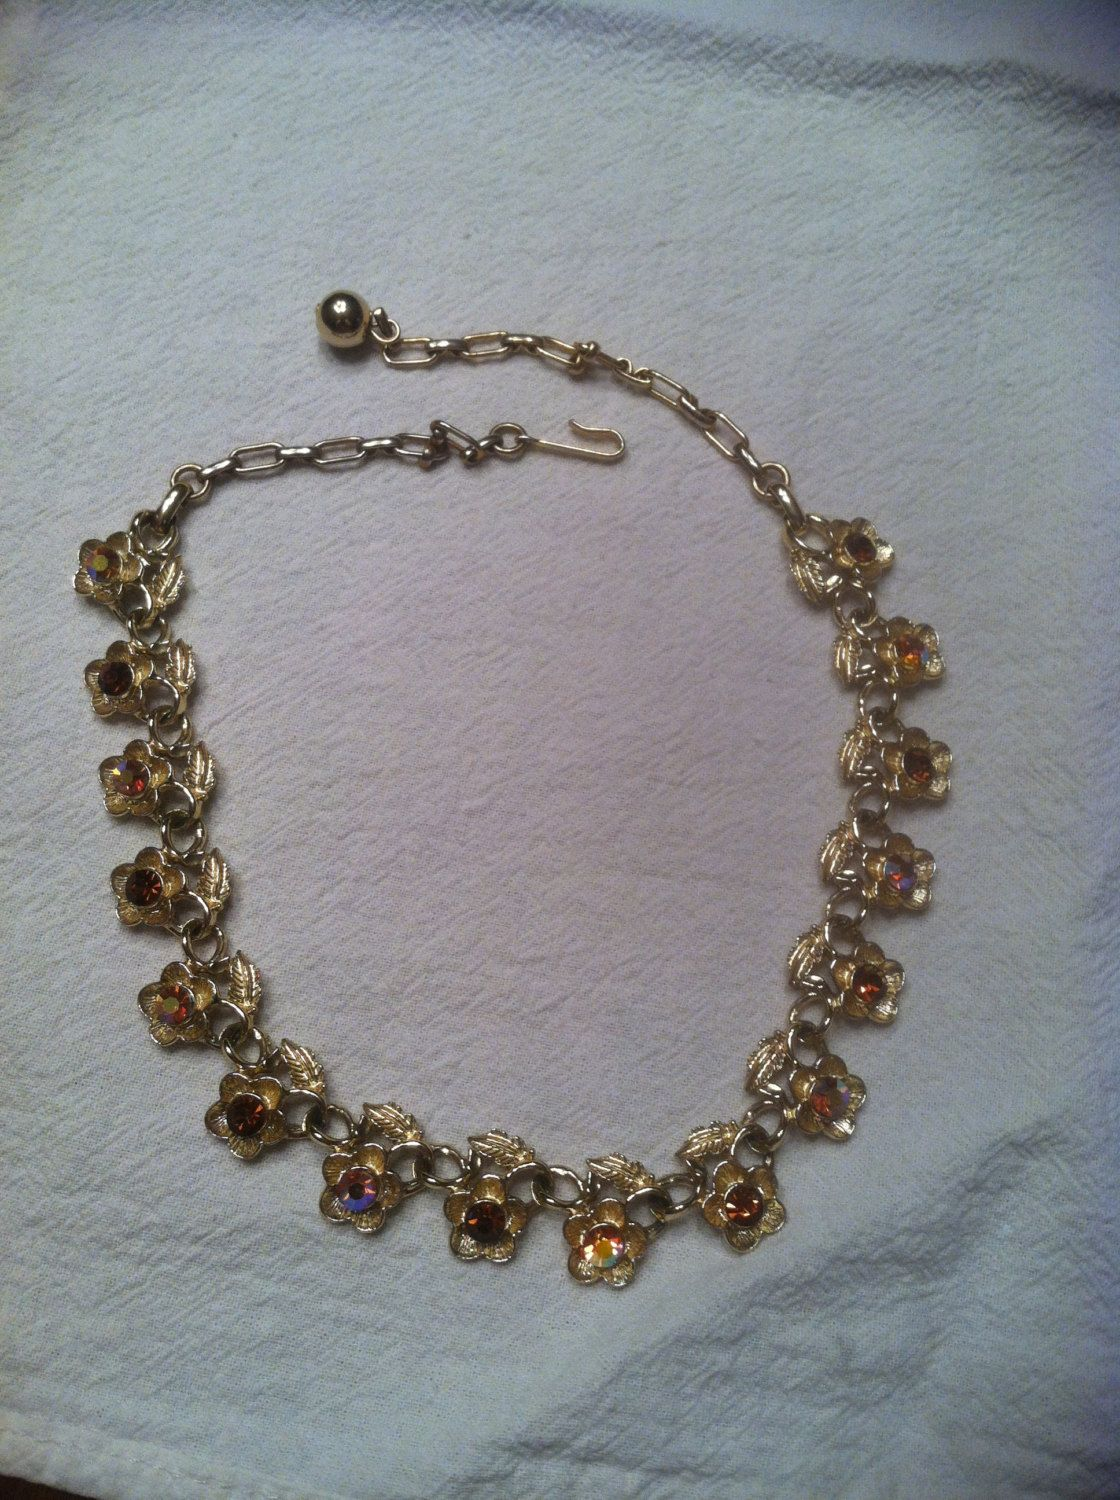 Vintage Gold Tone and Amber Rhinestone Floral Choker Beautiful by SimplyFunForMe on Etsy